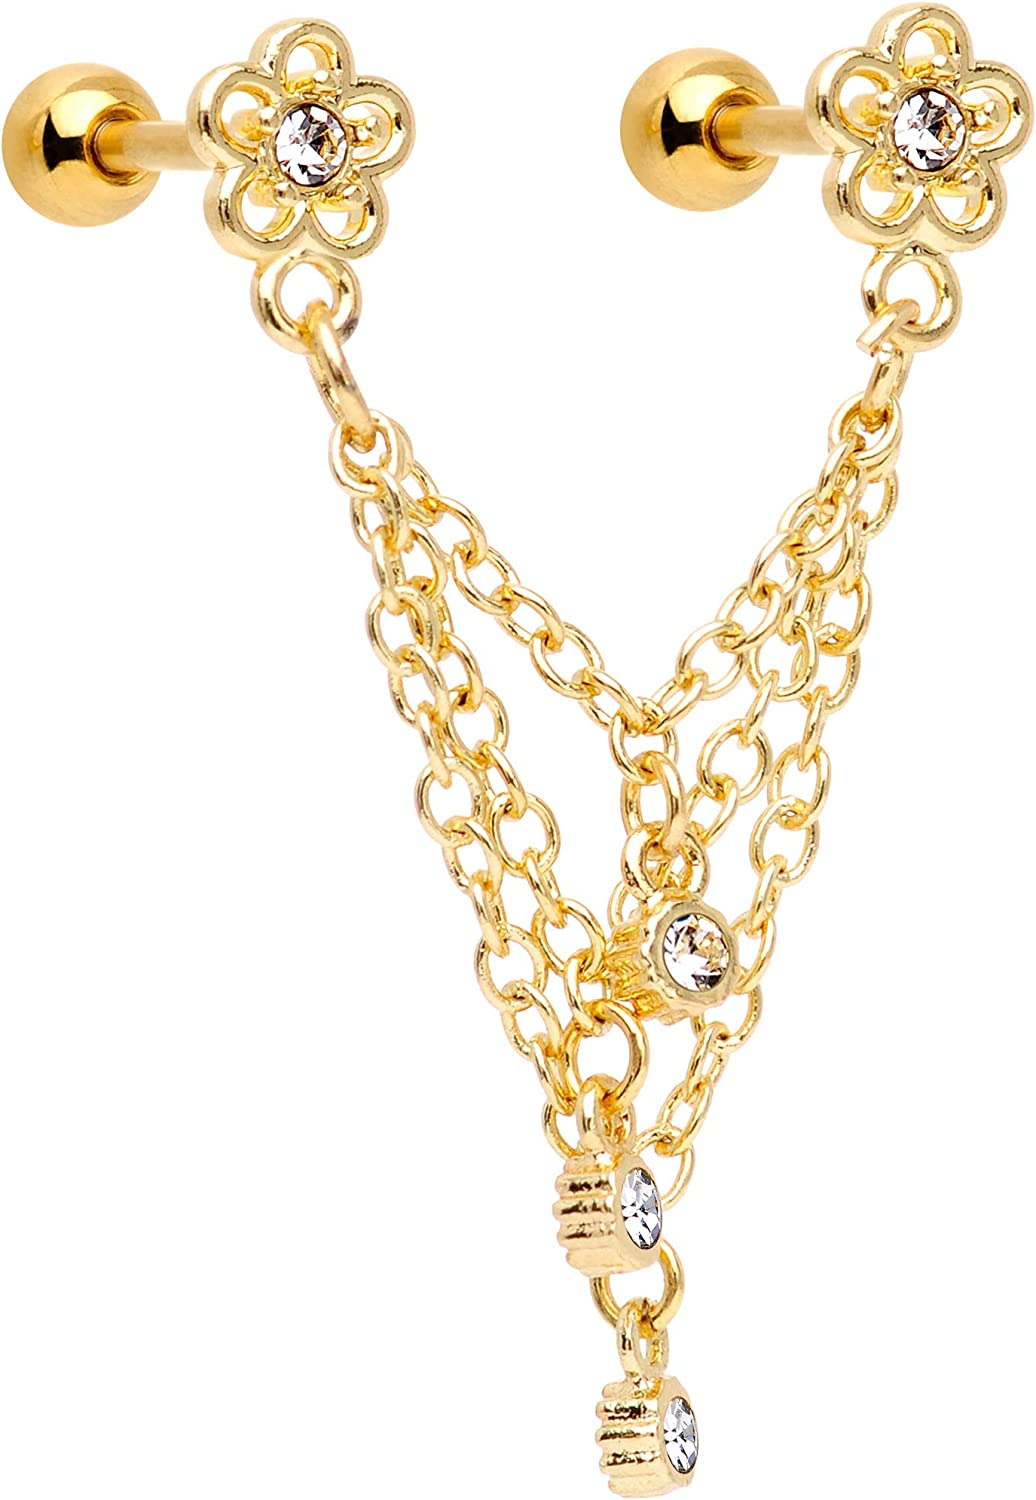 """Body Candy 16G Gold PVD Steel 1/4"""" Clear Accent Flower Cartilage Chain Earring Double Piercing for Women 6mm"""